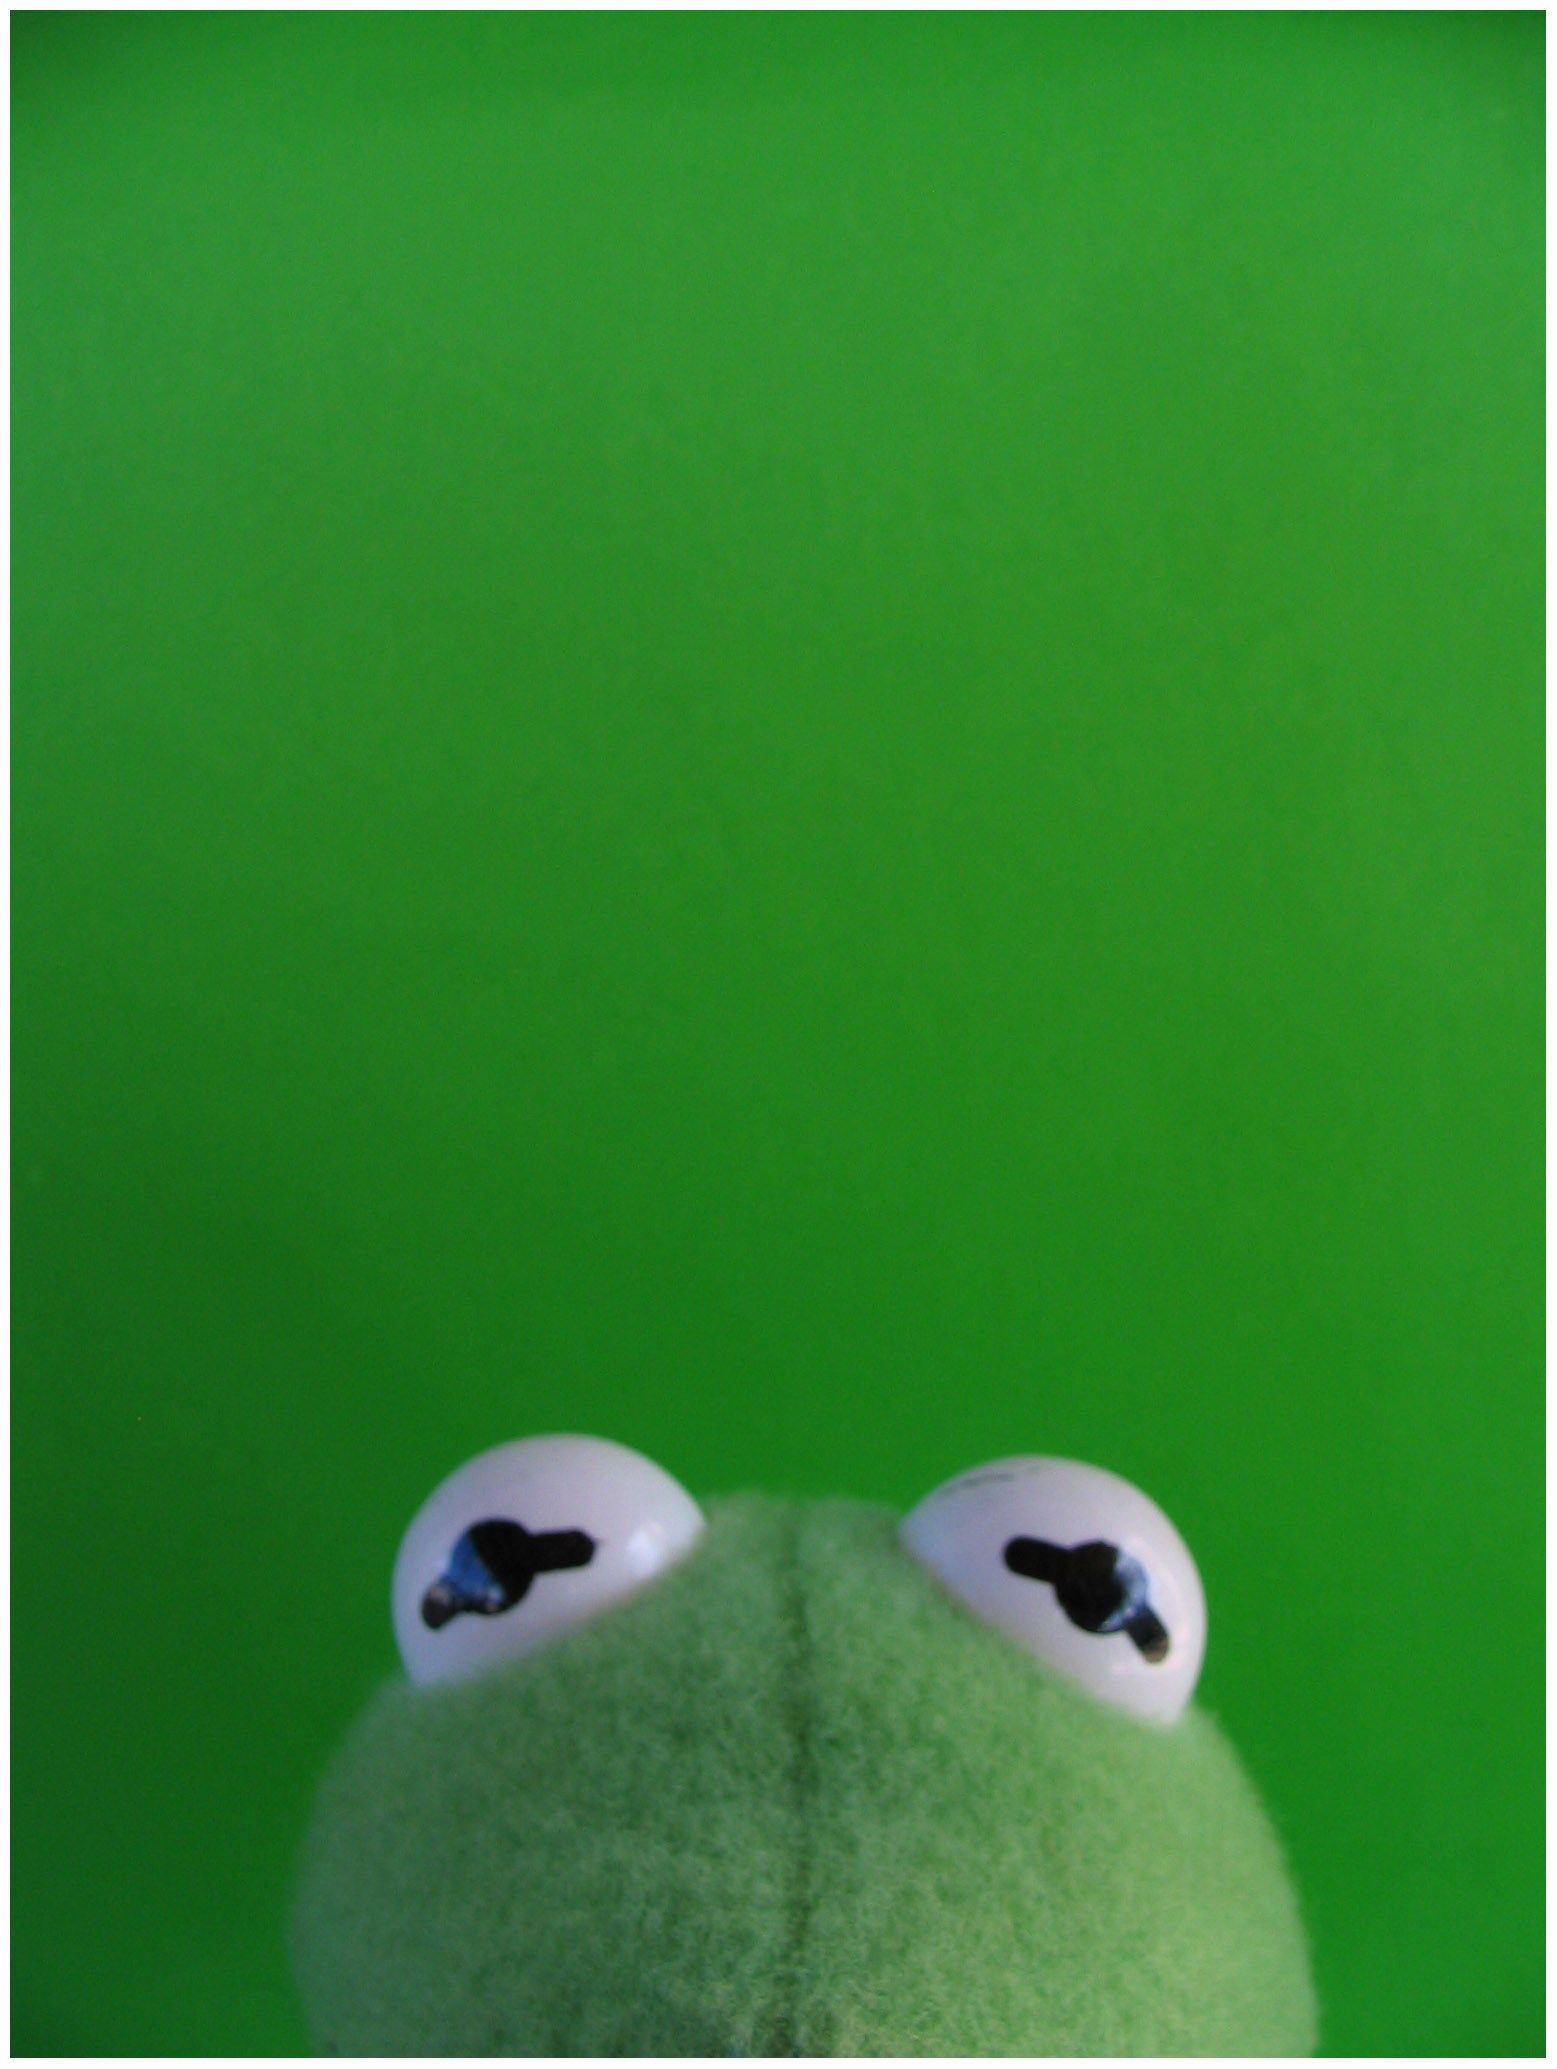 1557x2069 Green Kermit The Frog Wallpaper